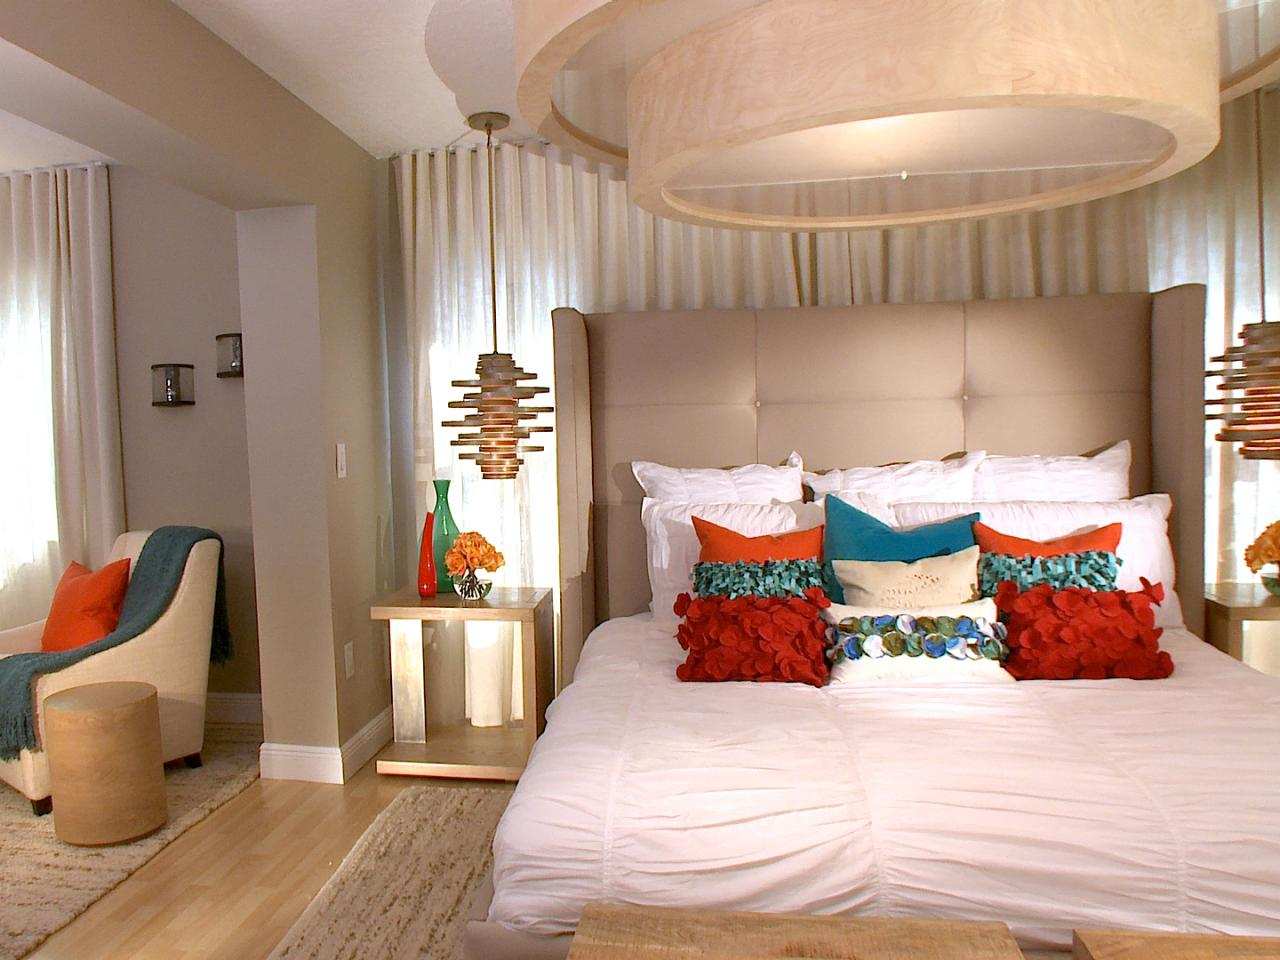 Simple bedroom decorating ideas for couples - Eclectic Meets Luxe